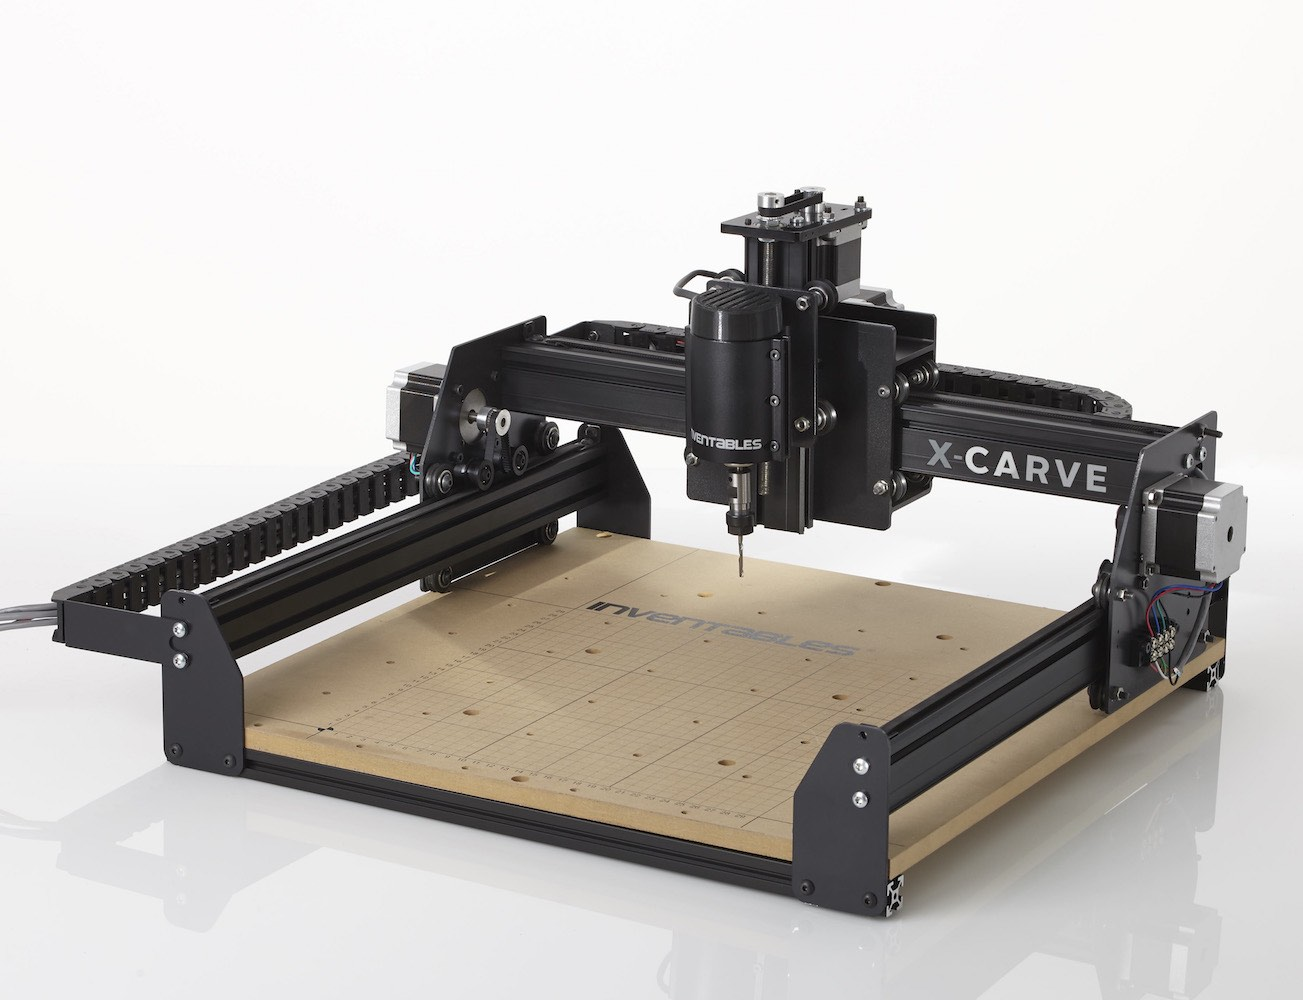 x carve open source cnc machine gadget flow. Black Bedroom Furniture Sets. Home Design Ideas